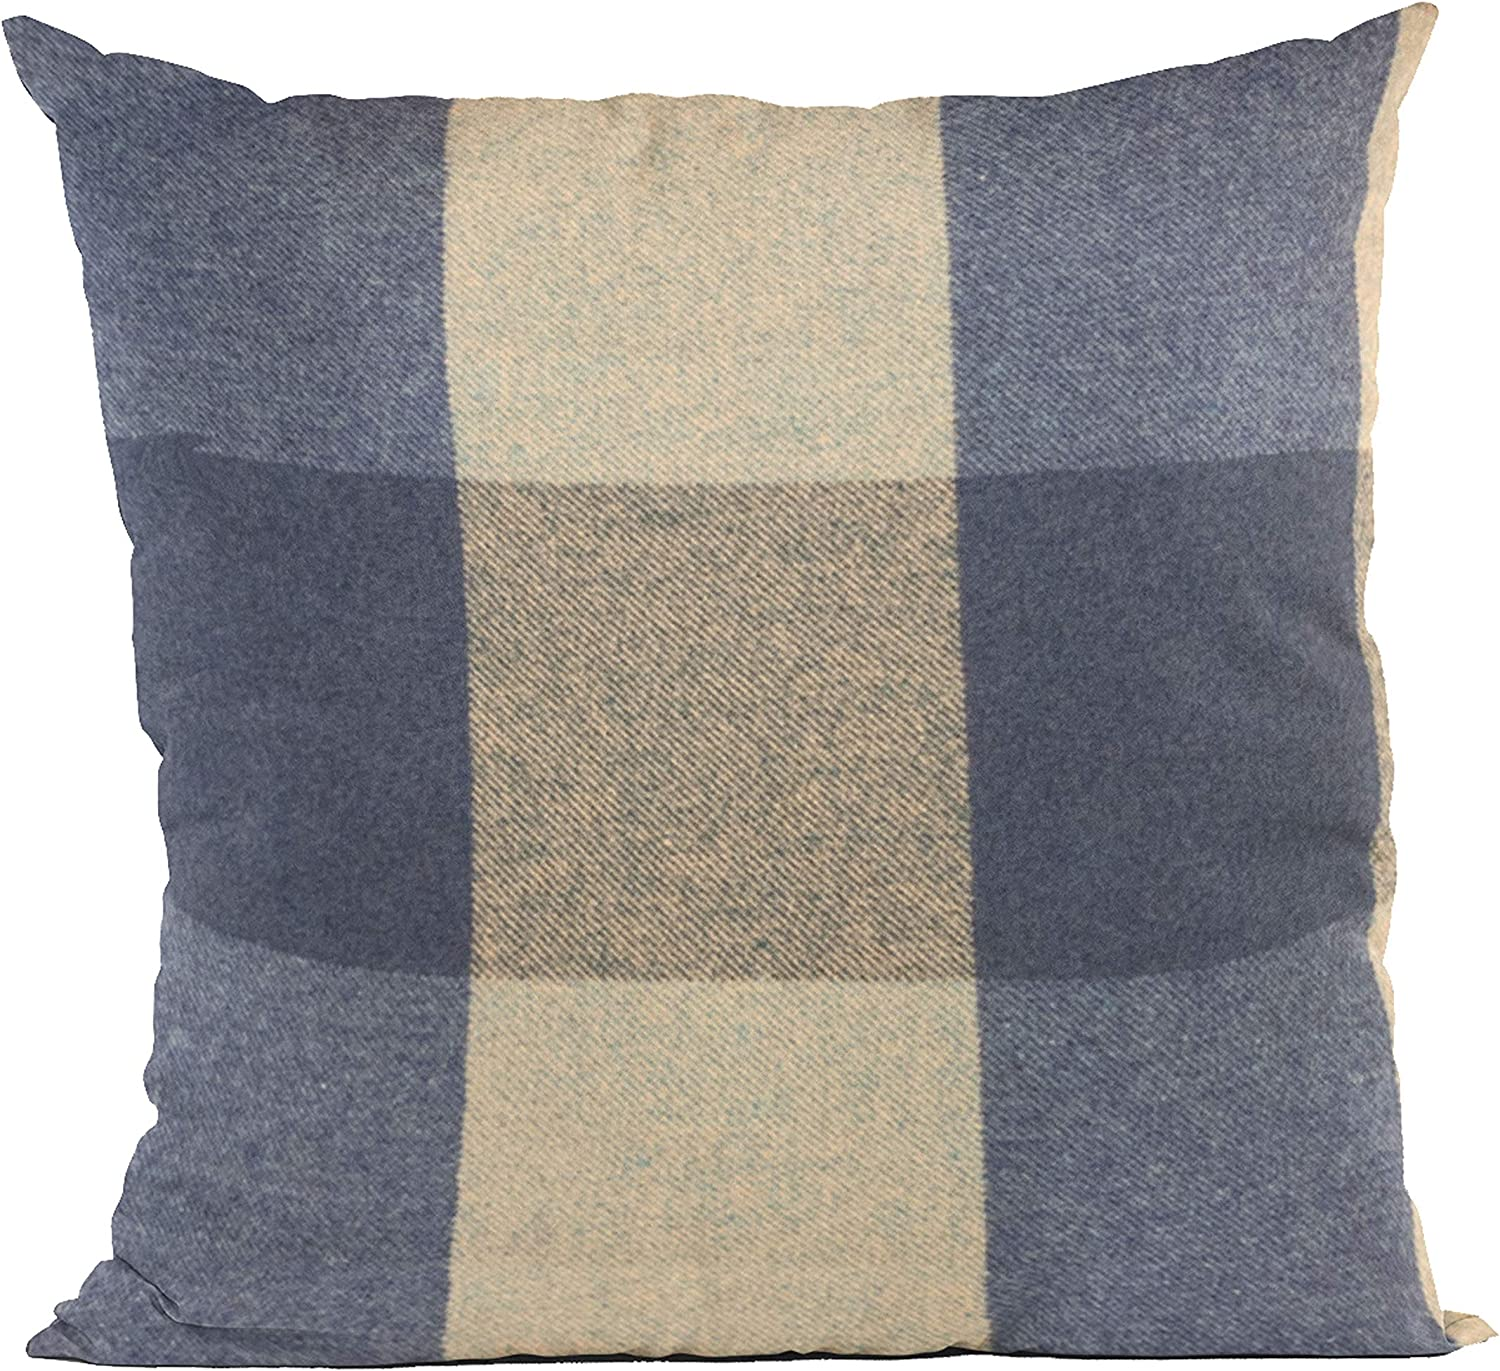 Plutus Brands Blue Squares Plaid Luxury Throw i Pillow 12 specialty shop Direct sale of manufacturer